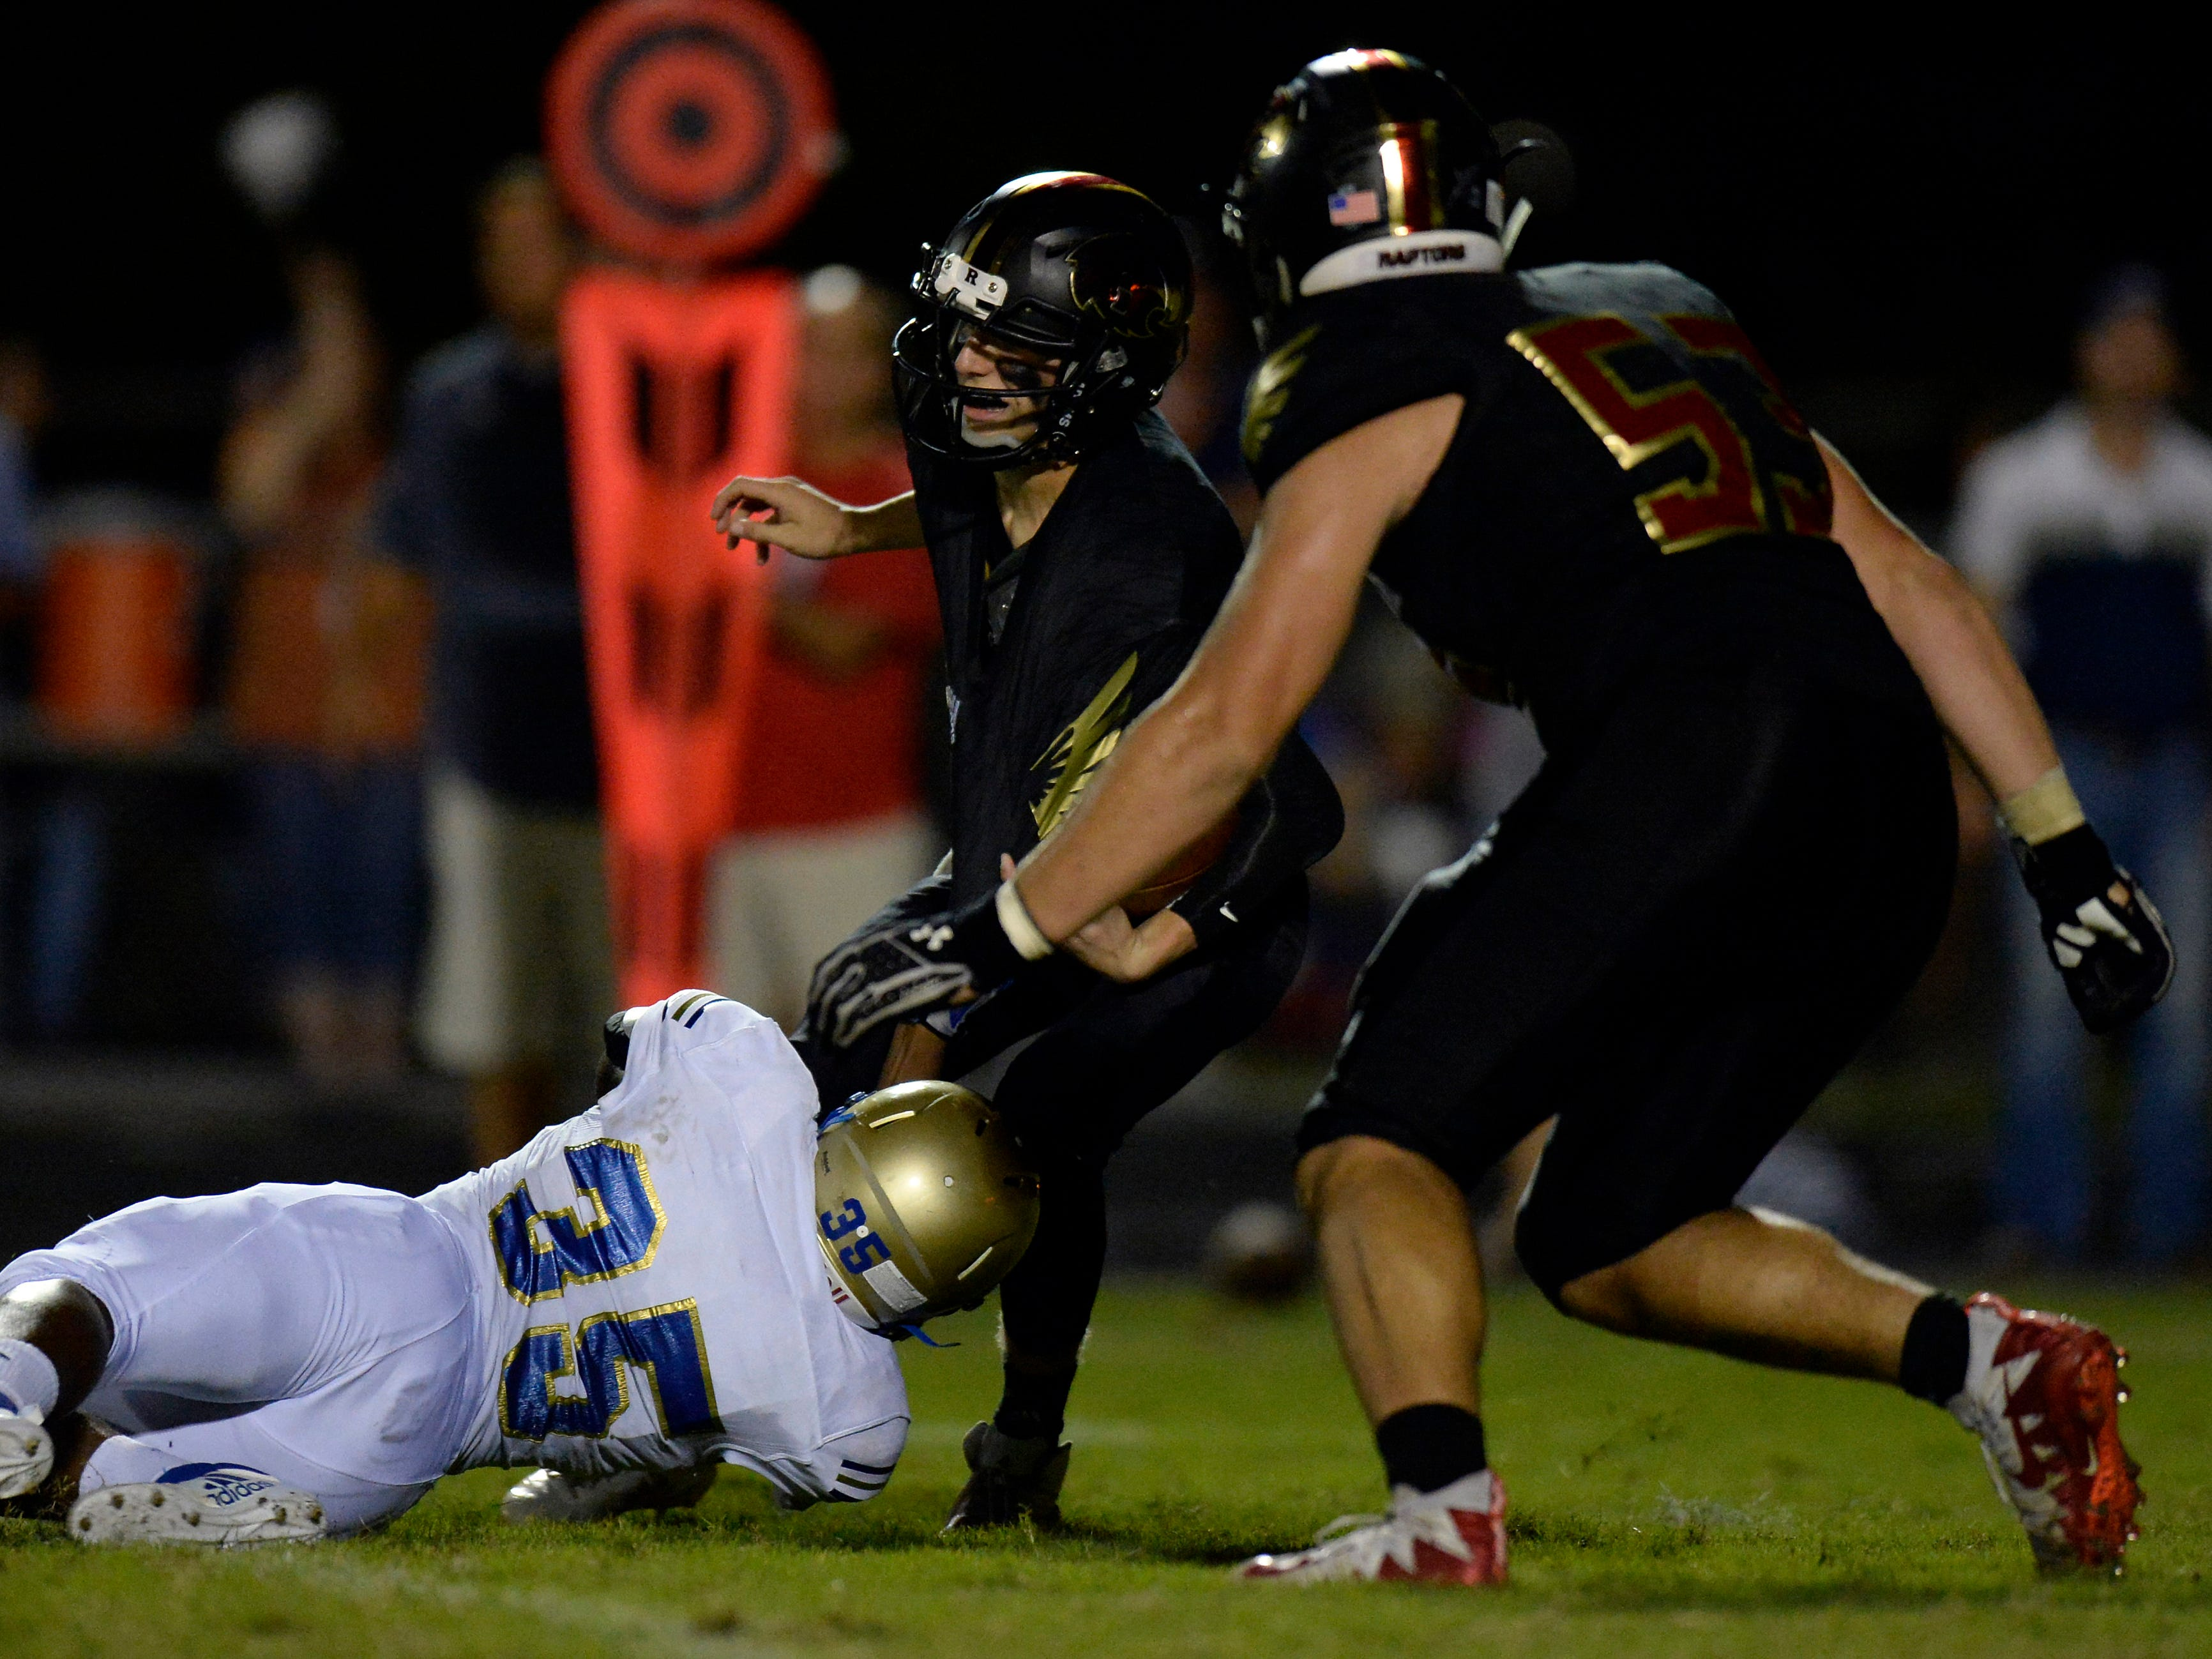 Brentwood linebacker Kaleb Williford (35) sacks Ravenwood quarterback Brian Garcia, center, during the second half of a high school football game Friday, September 14, 2018, in Brentwood, Tenn. Brentwood won 31-28.